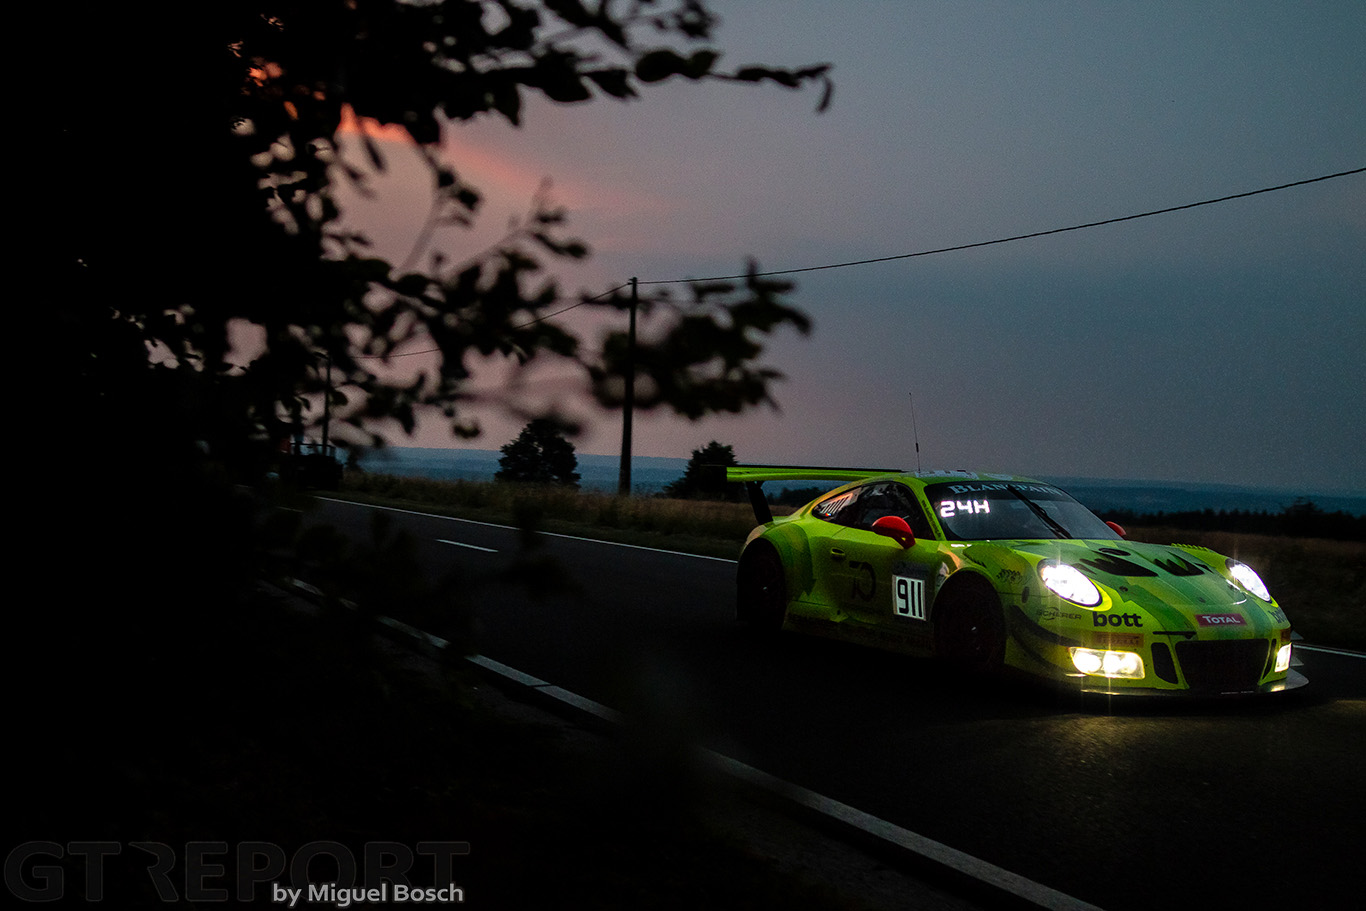 Spa 24 Hours gallery: Parade